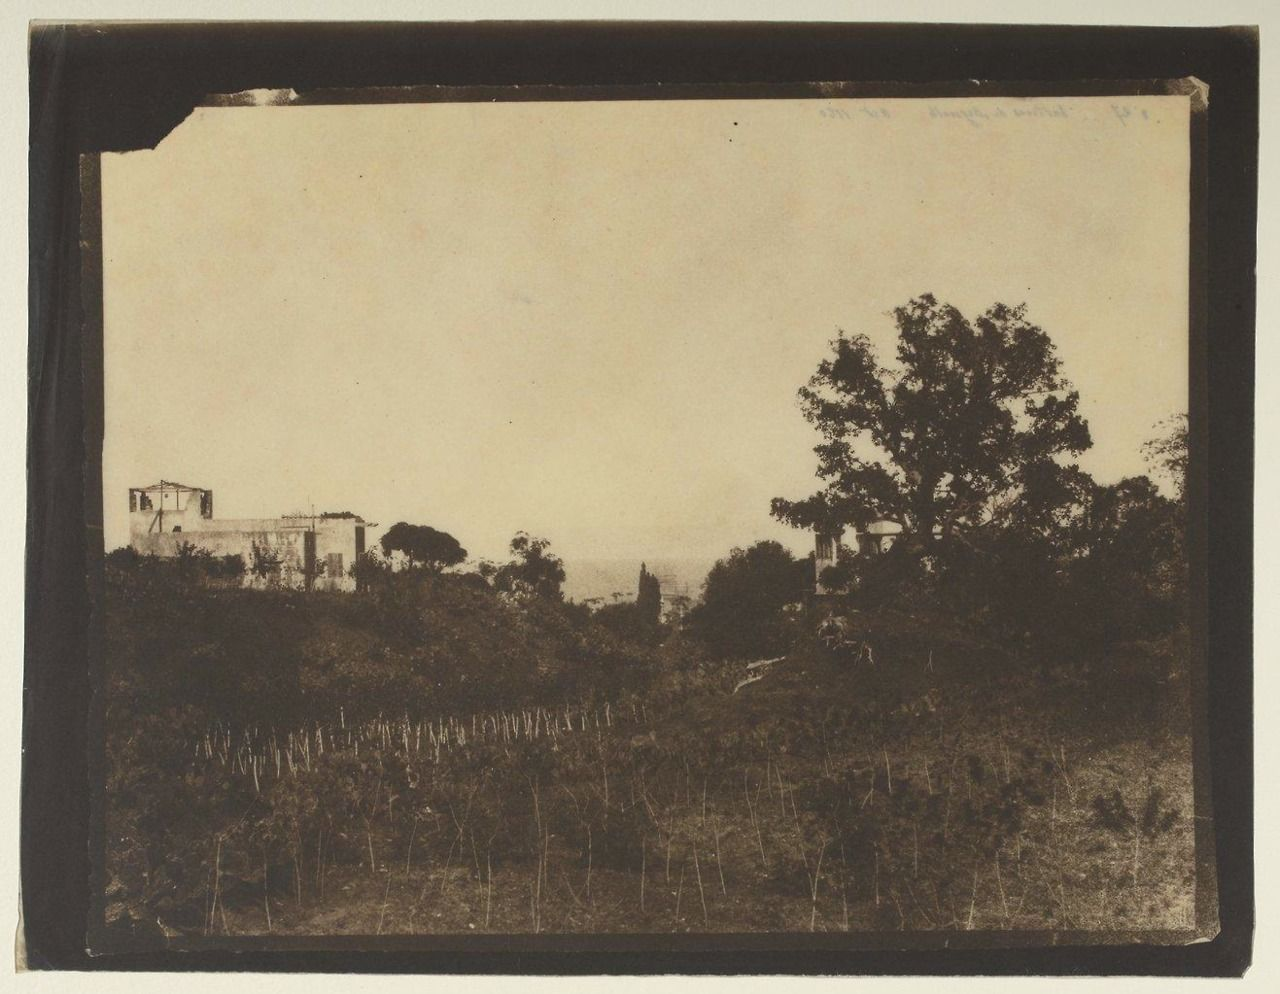 Beirut 1860 Source Bibliotheque Nationale De France Old  # Bibliotheque Saraya